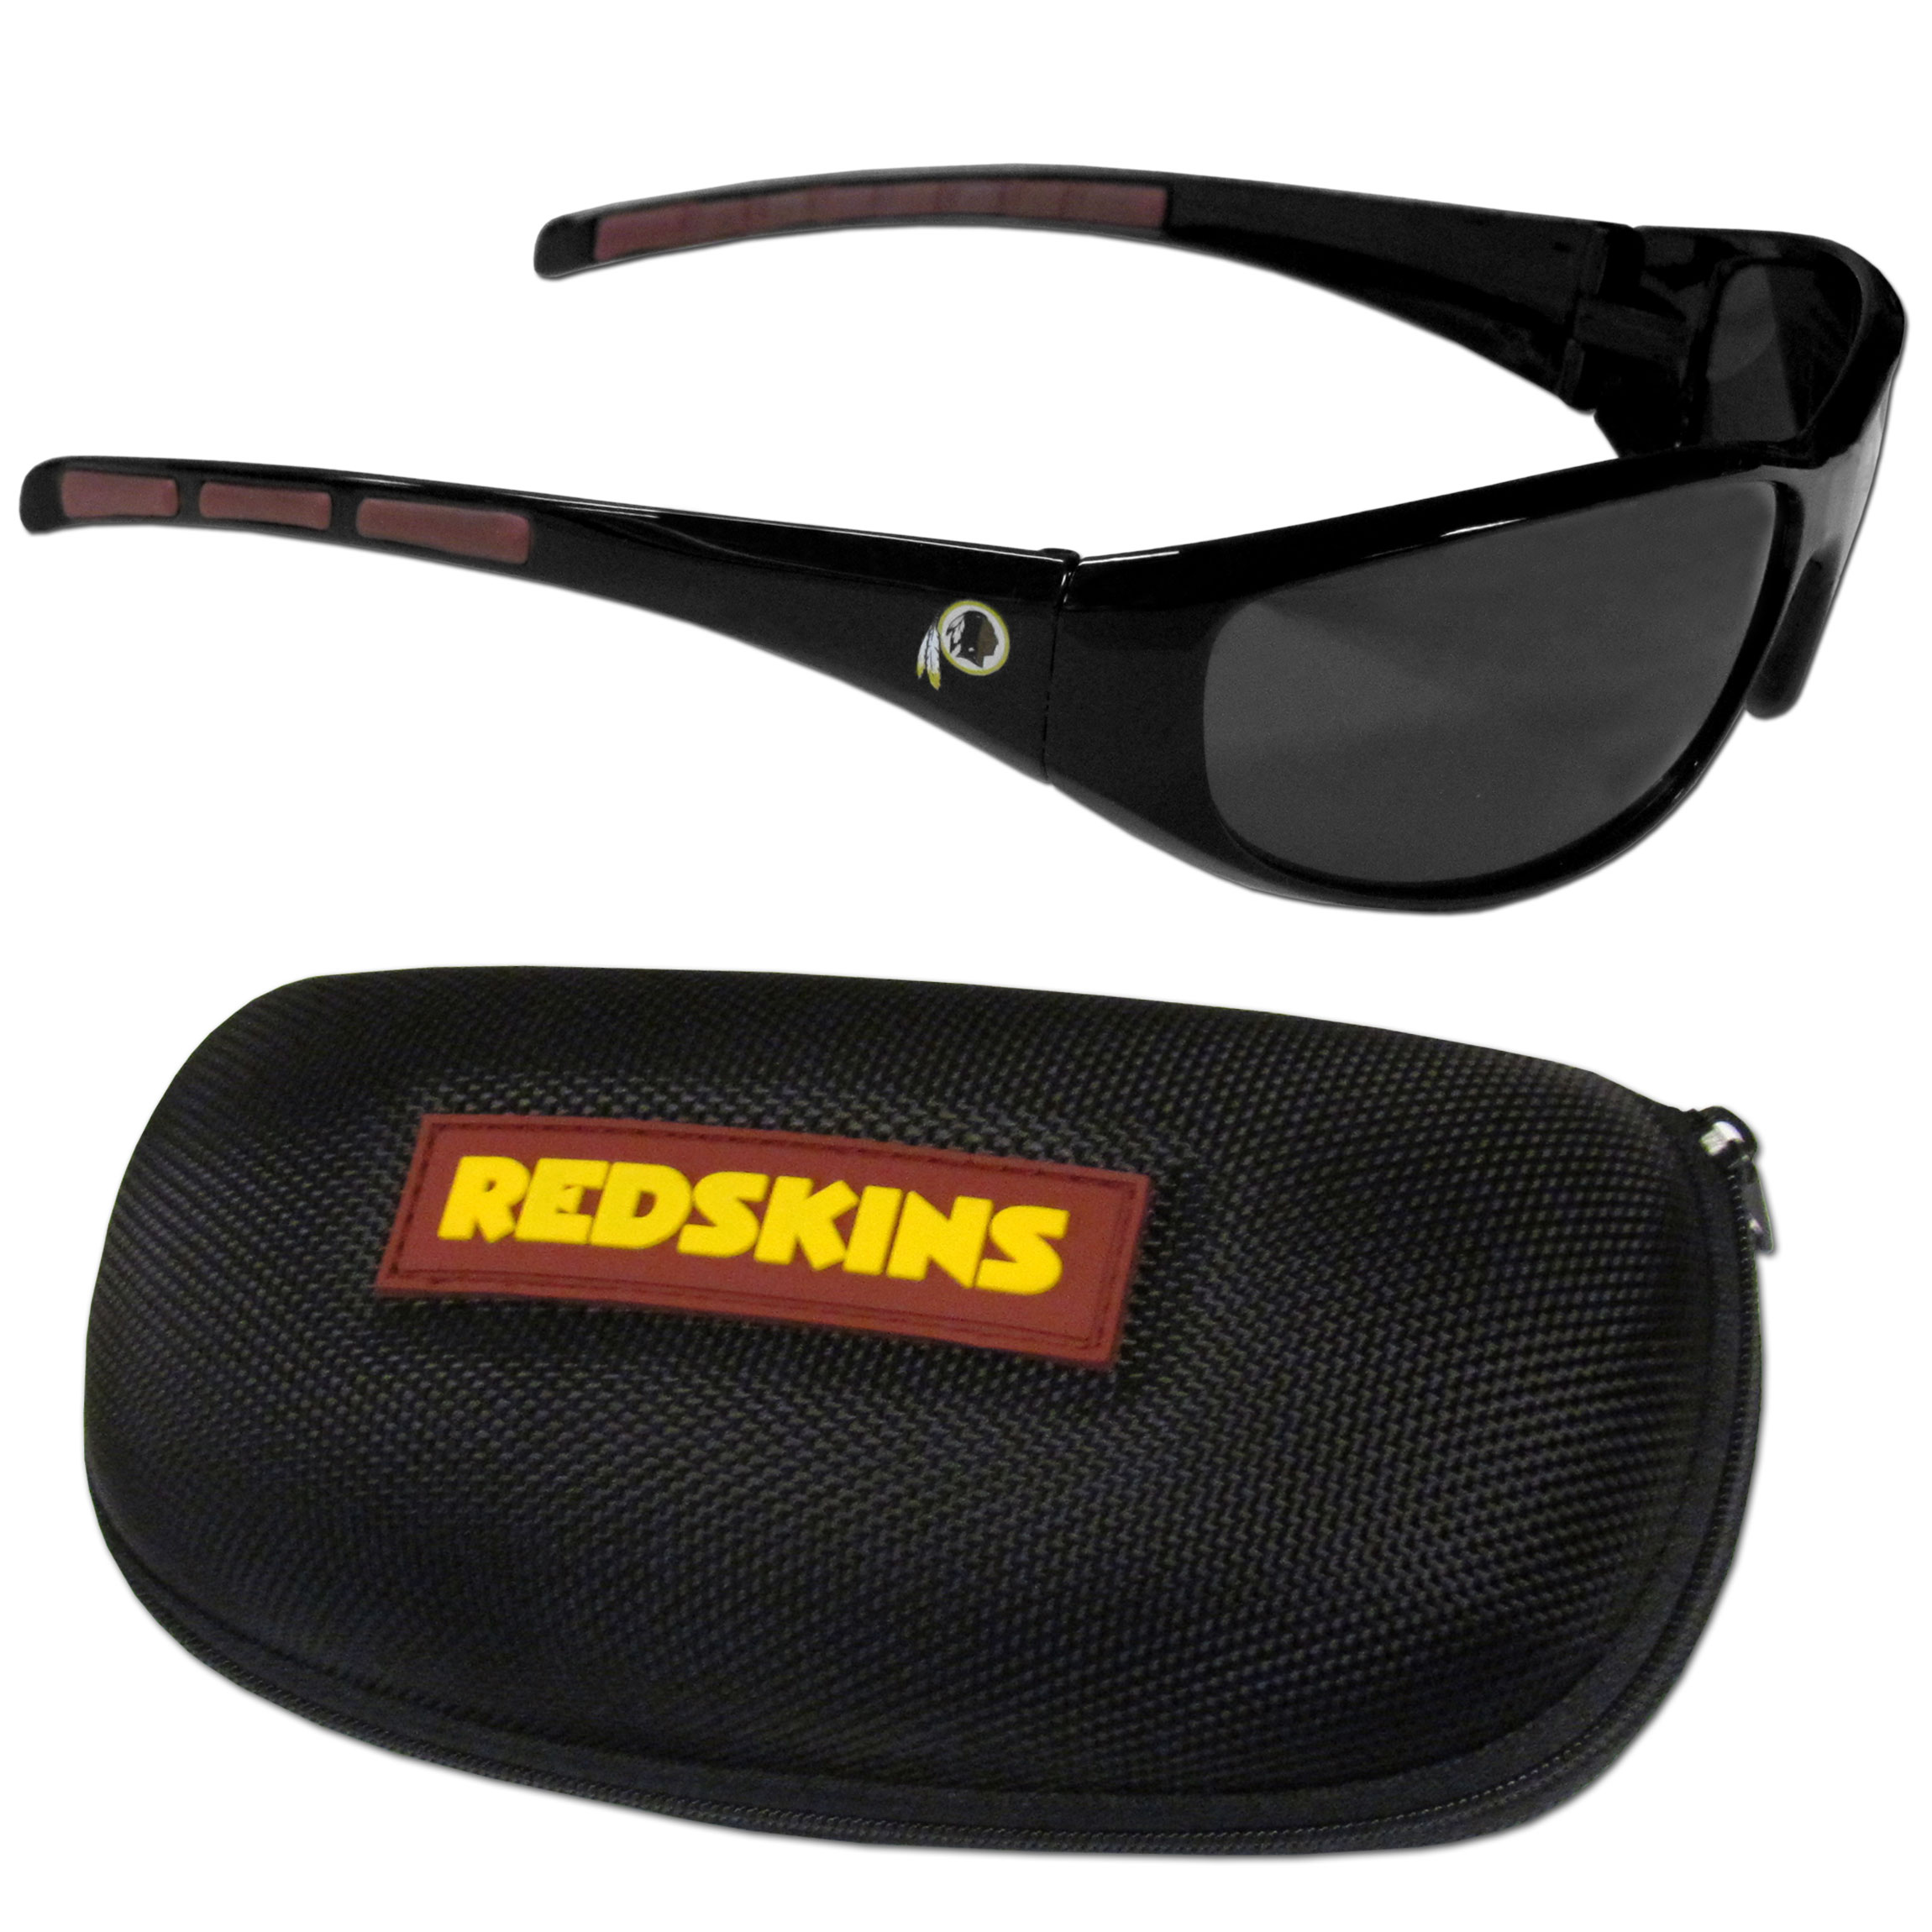 Washington Redskins Wrap Sunglass and Case Set - This great set includes a high quality pair of Washington Redskins wrap sunglasses and hard carrying case.